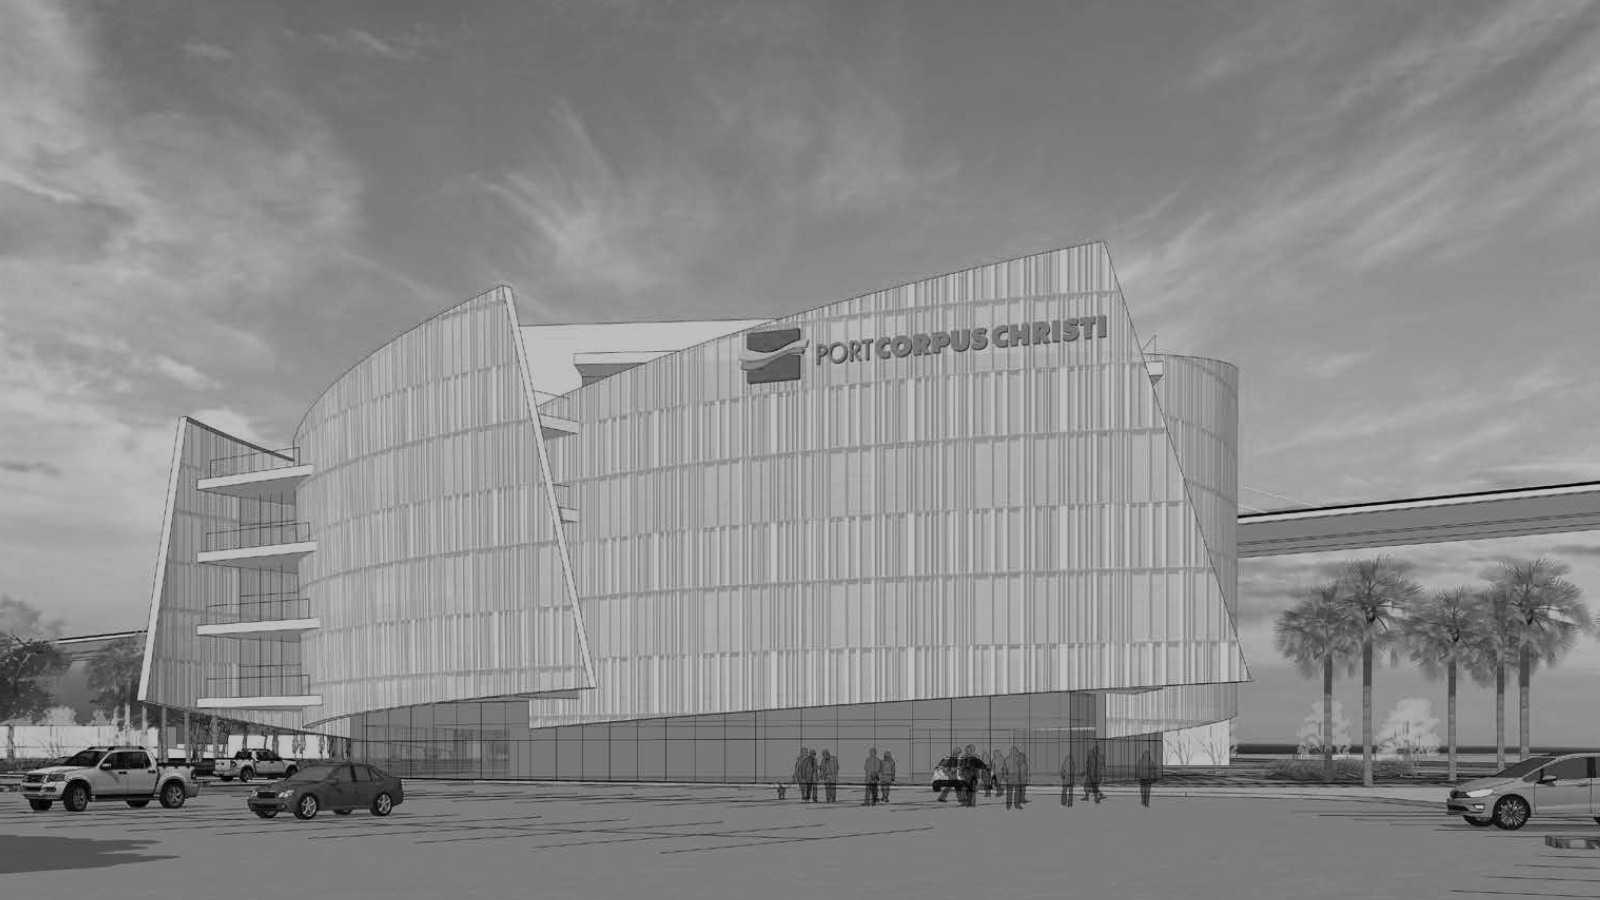 stylized, B&W photo of GENSLER - ADMINISTRATION OFFICE FOR THE PORT OF CORPUS CHRISTI